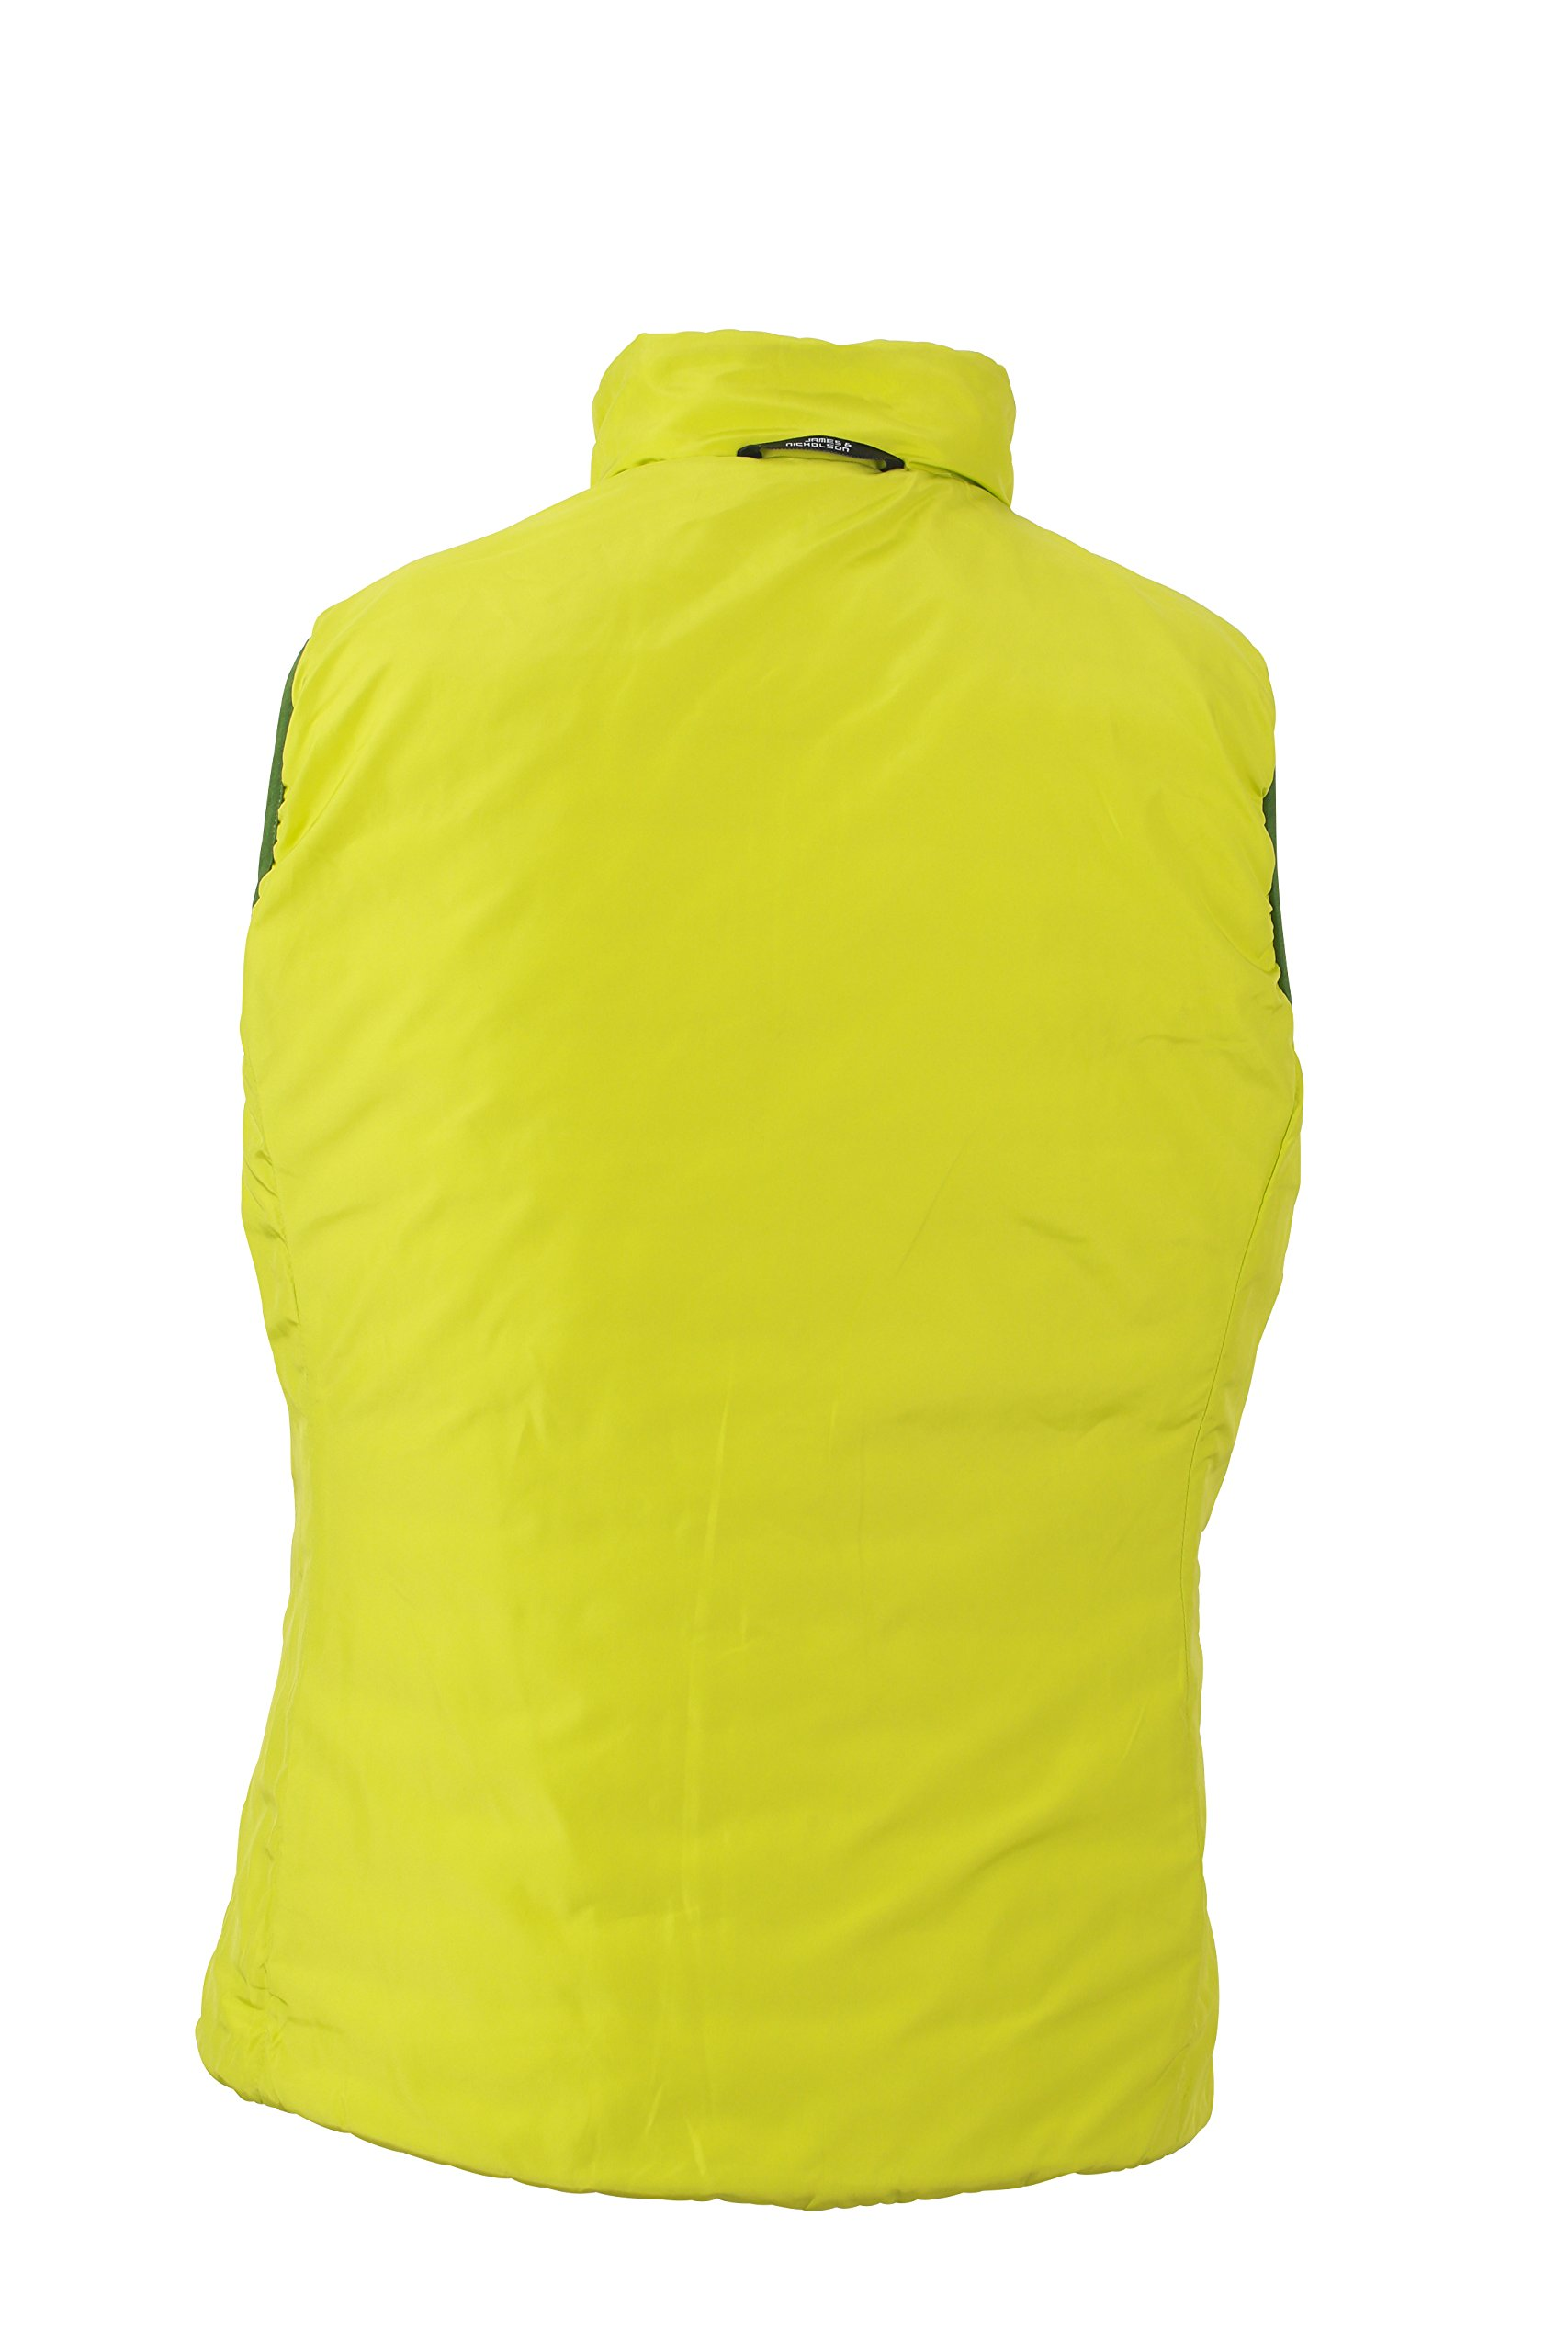 71aYlrwcxNL - James & Nicholson Women's Lightweight Vest Outdoor